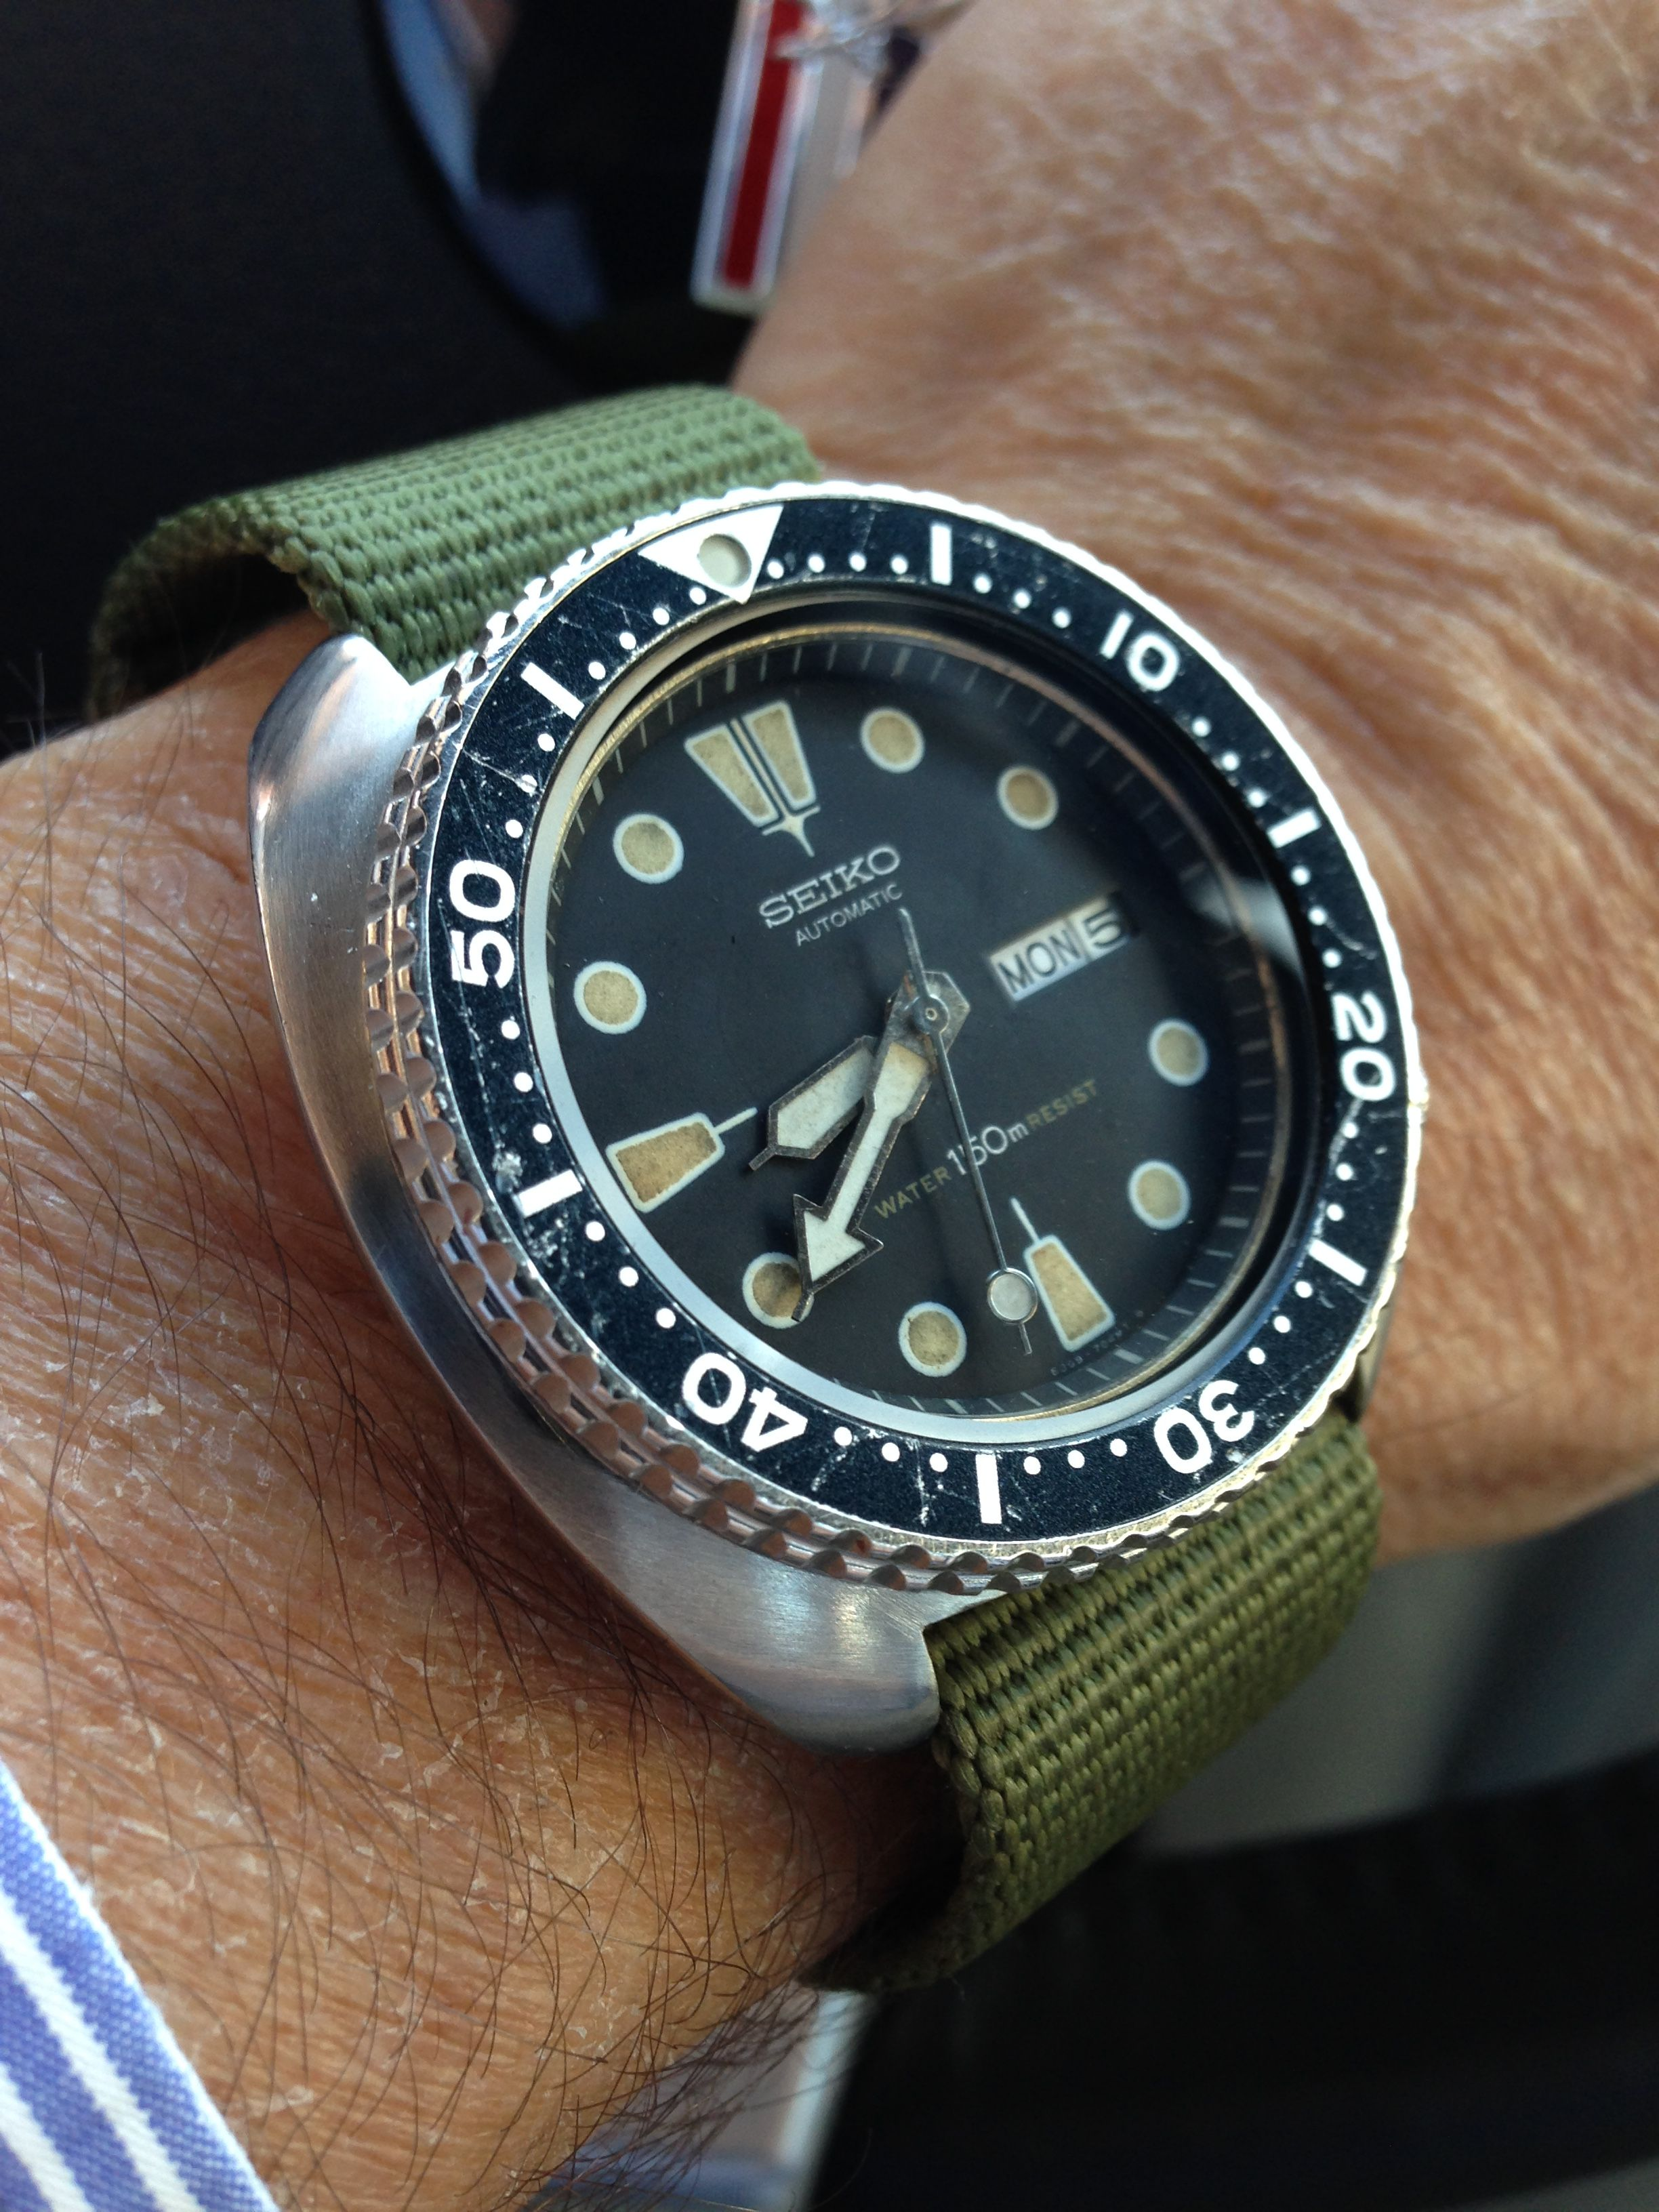 natch watches badass s drivers jewels pin eta pronto submersible